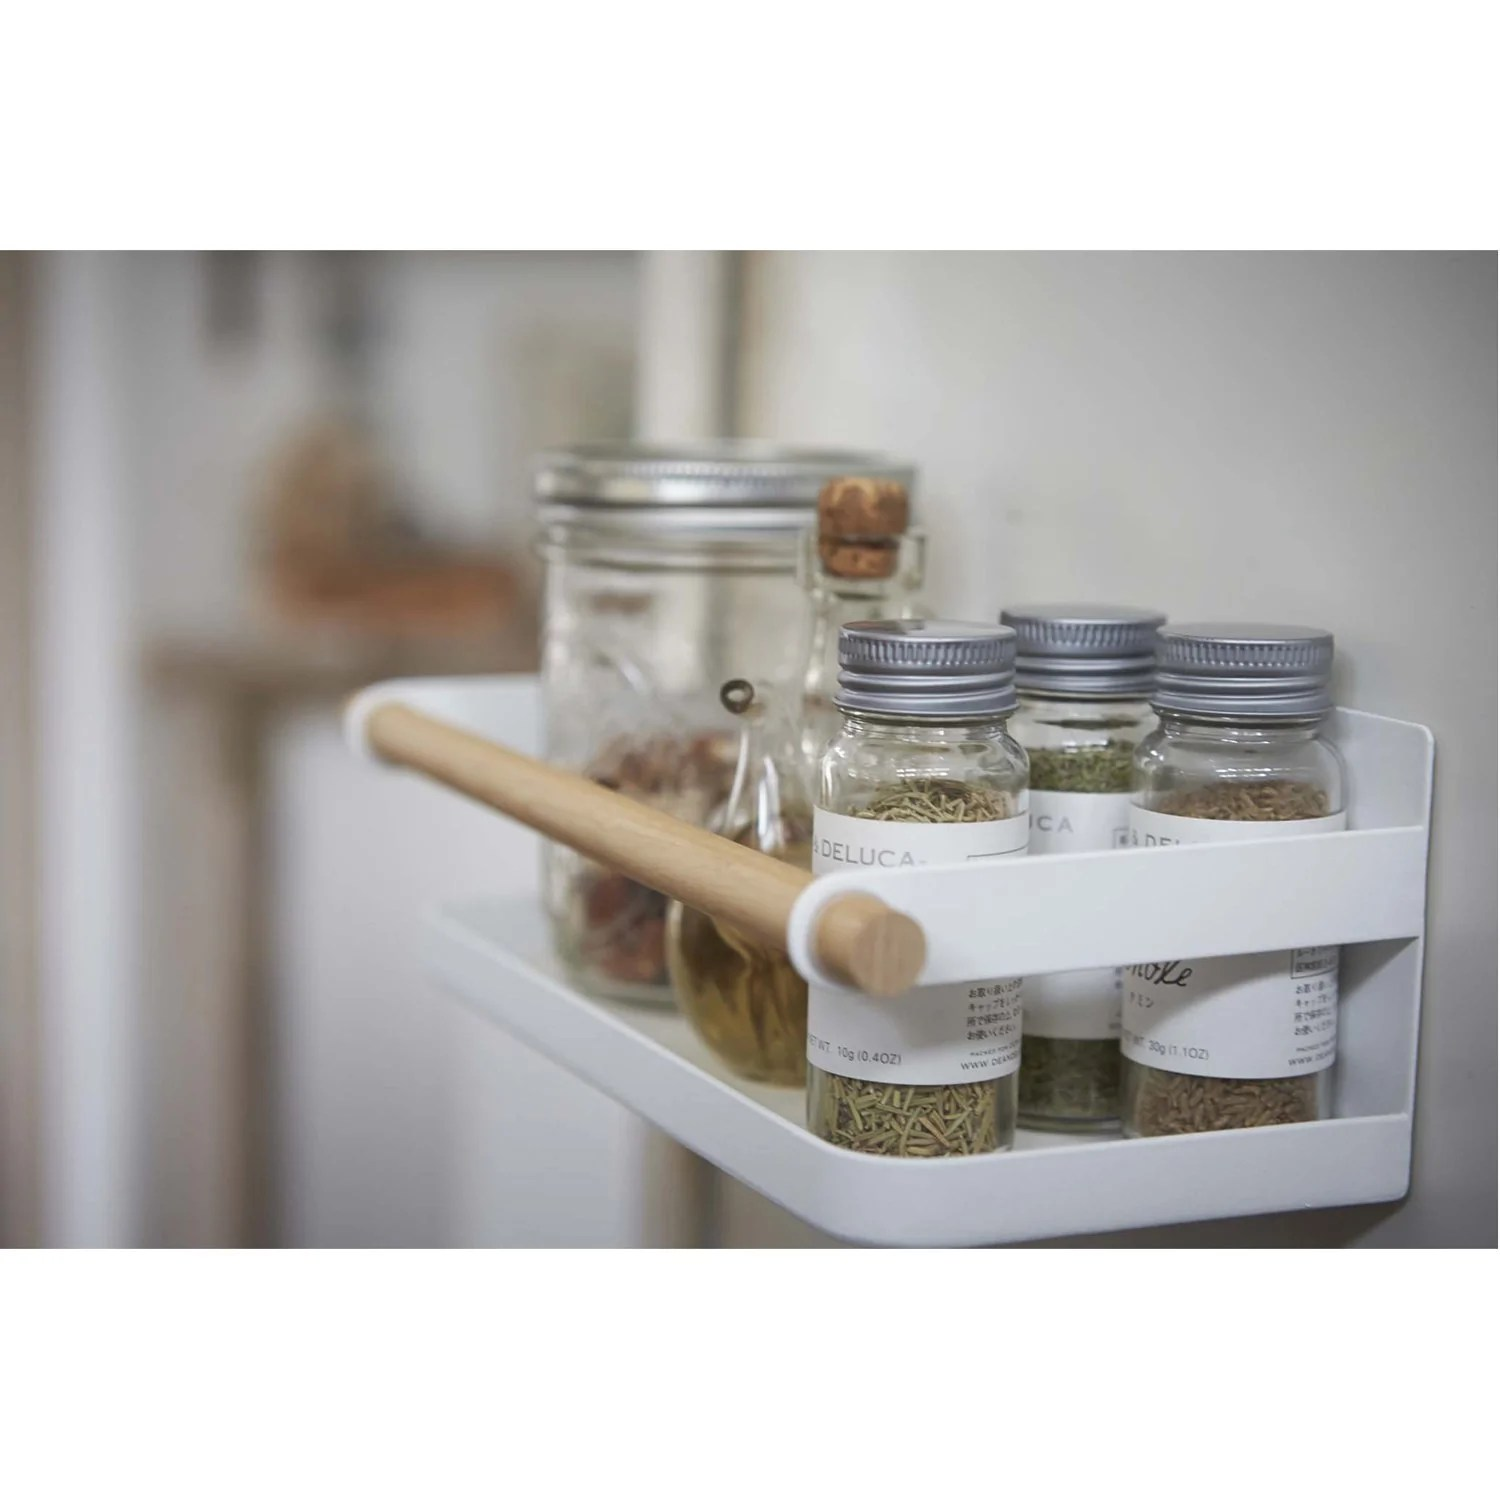 tosca magnet spice rack wood accent